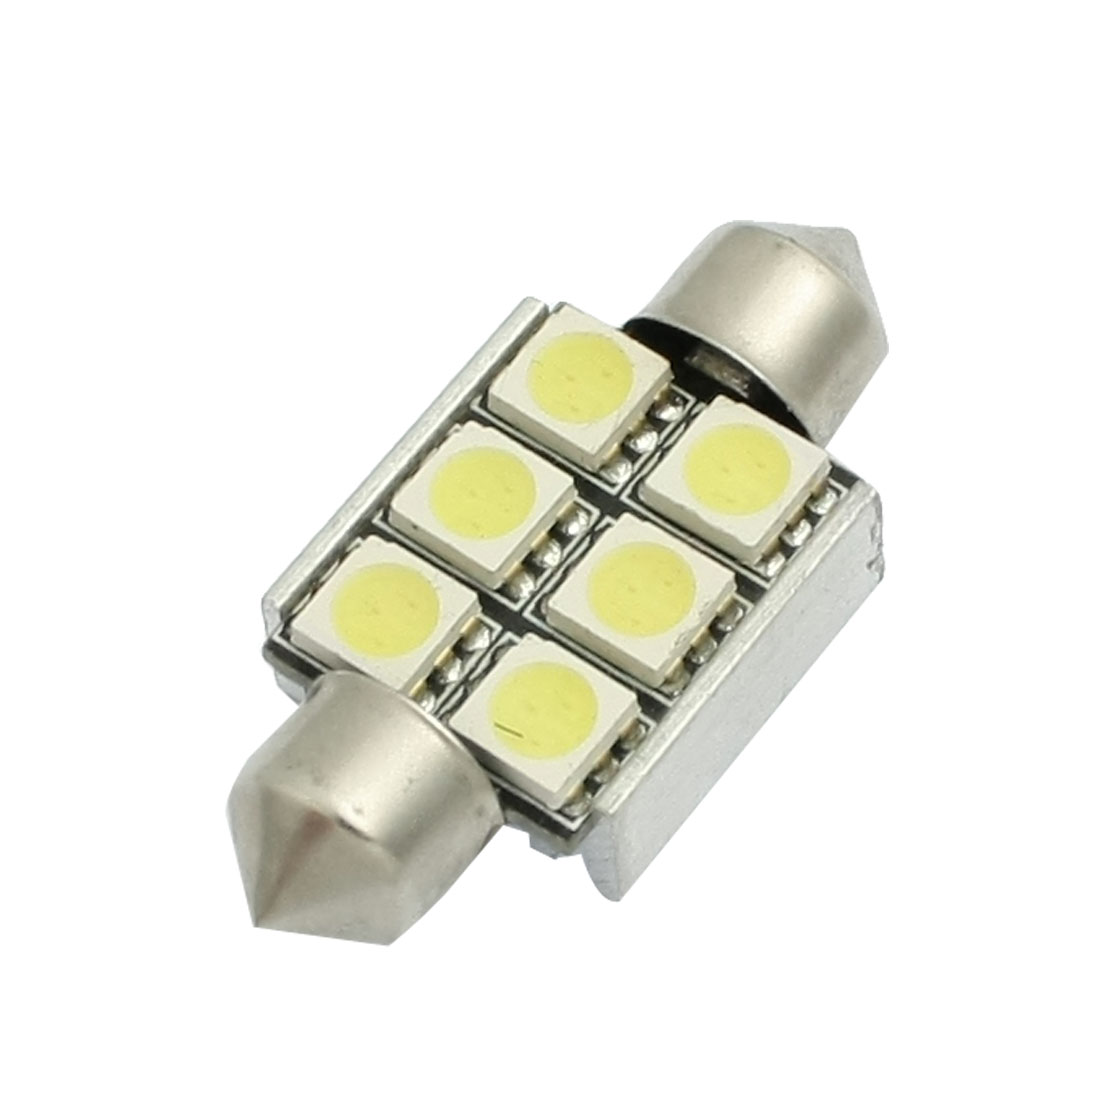 36mm 6 LED 5050 SMD White Festoon Dome Bulb License Plate Light Heat Sink